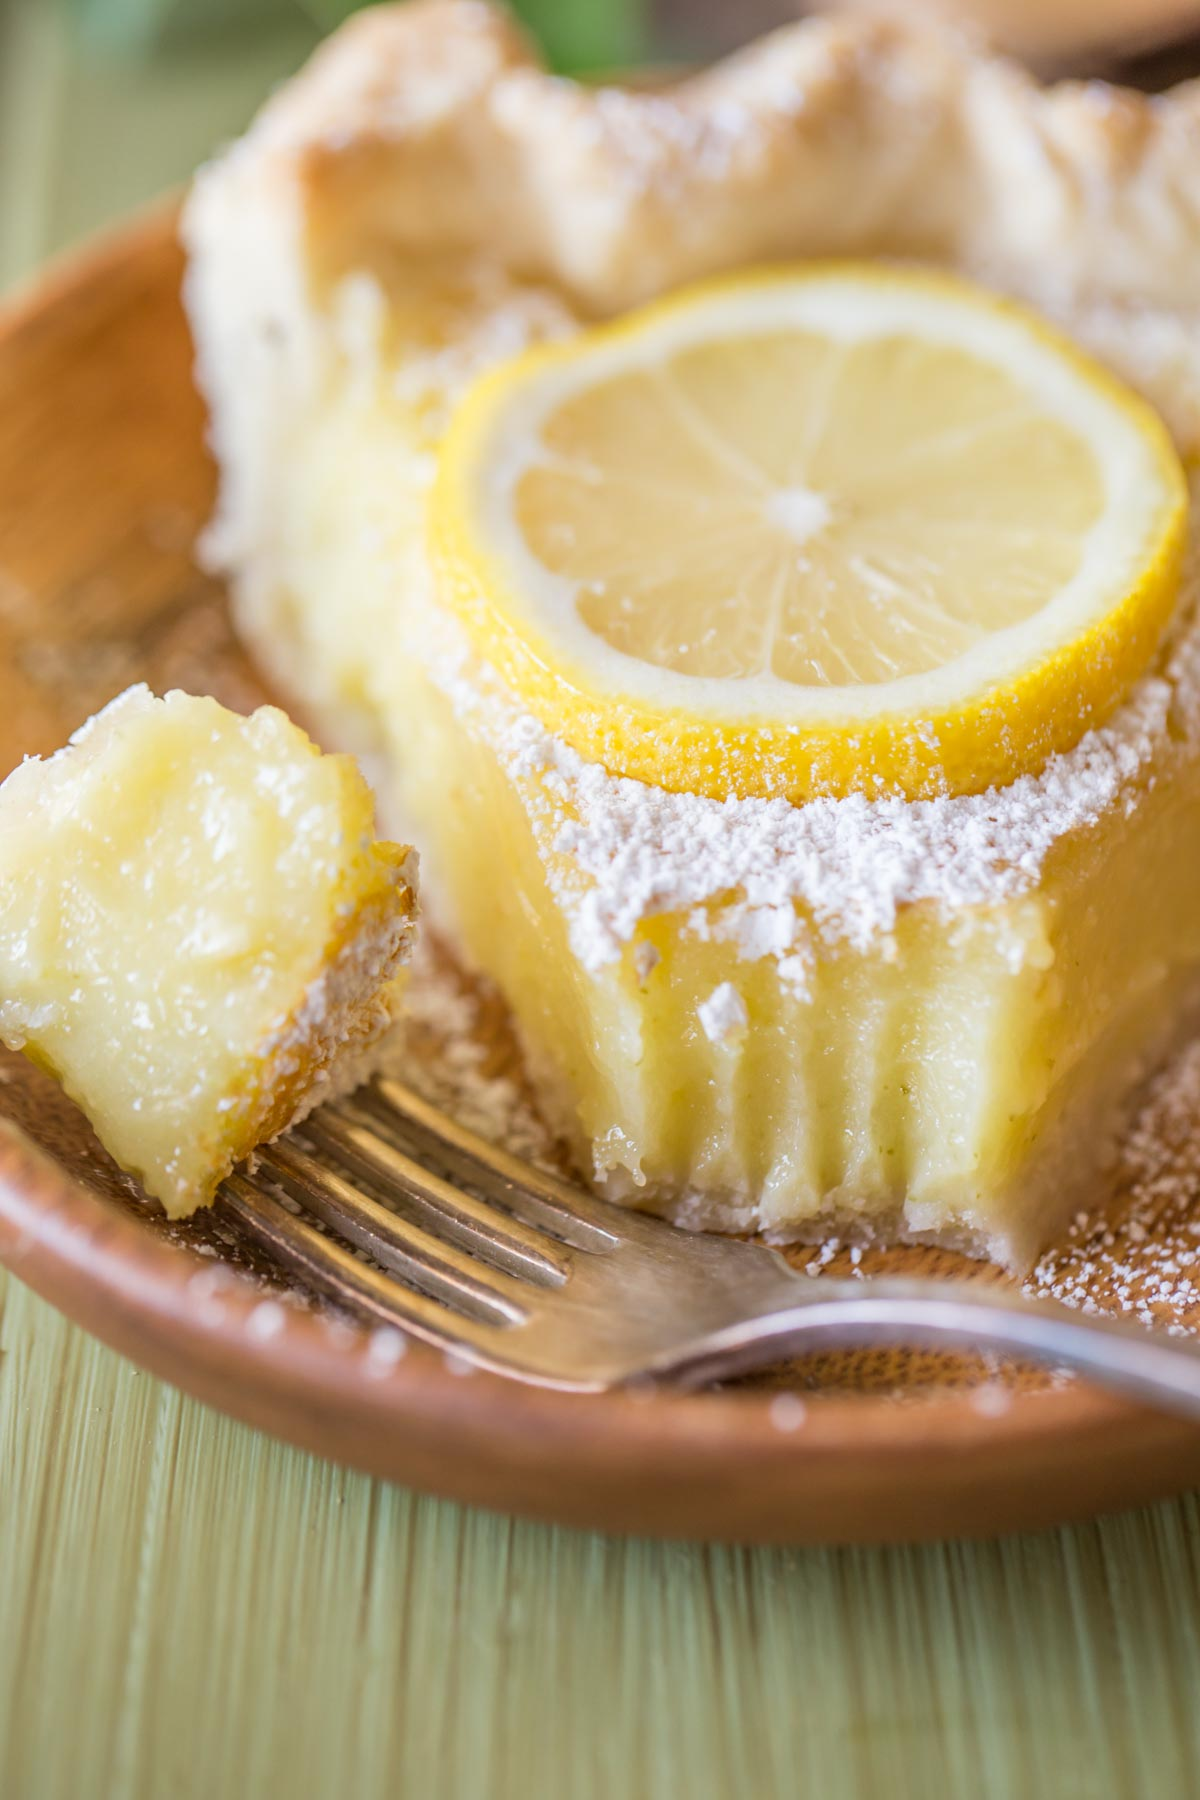 A slice of Whole Lemon Pie dusted with powdered sugar and topped with a lemon slice, on a plate with a fork with a piece of pie on it.